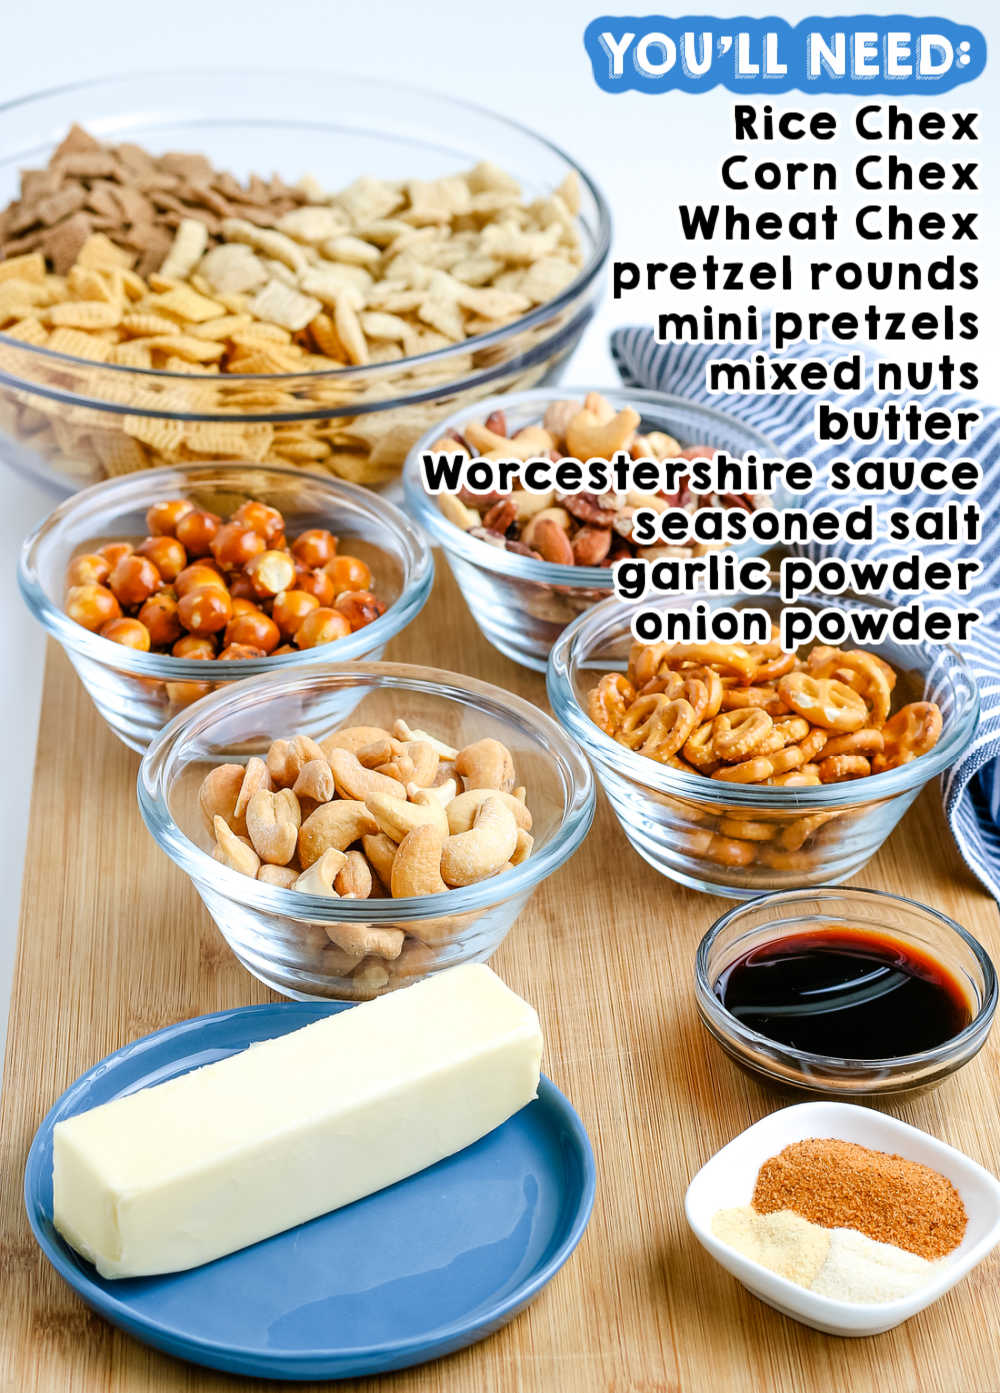 All of the ingredients needed to make this Chex Party Mix recipe.